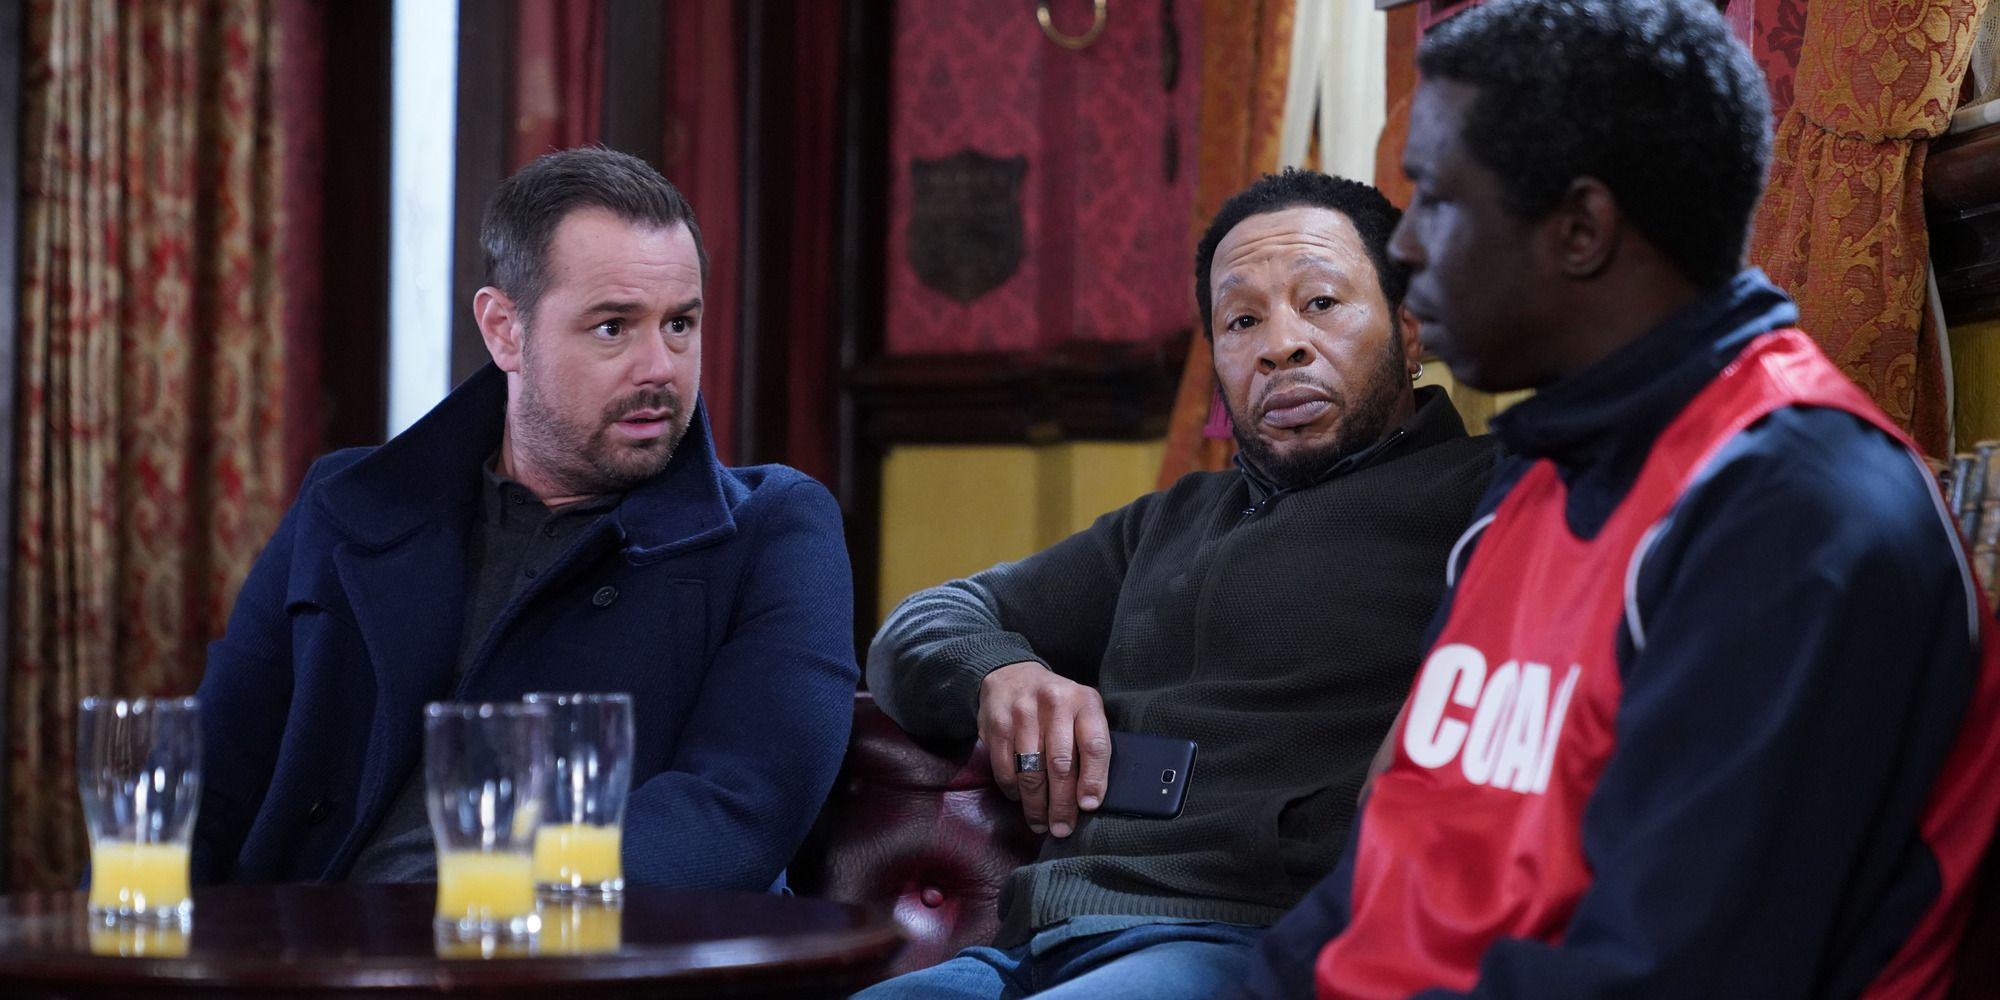 Mick Carter and Mitch Baker speak to Caden at the pub in EastEnders